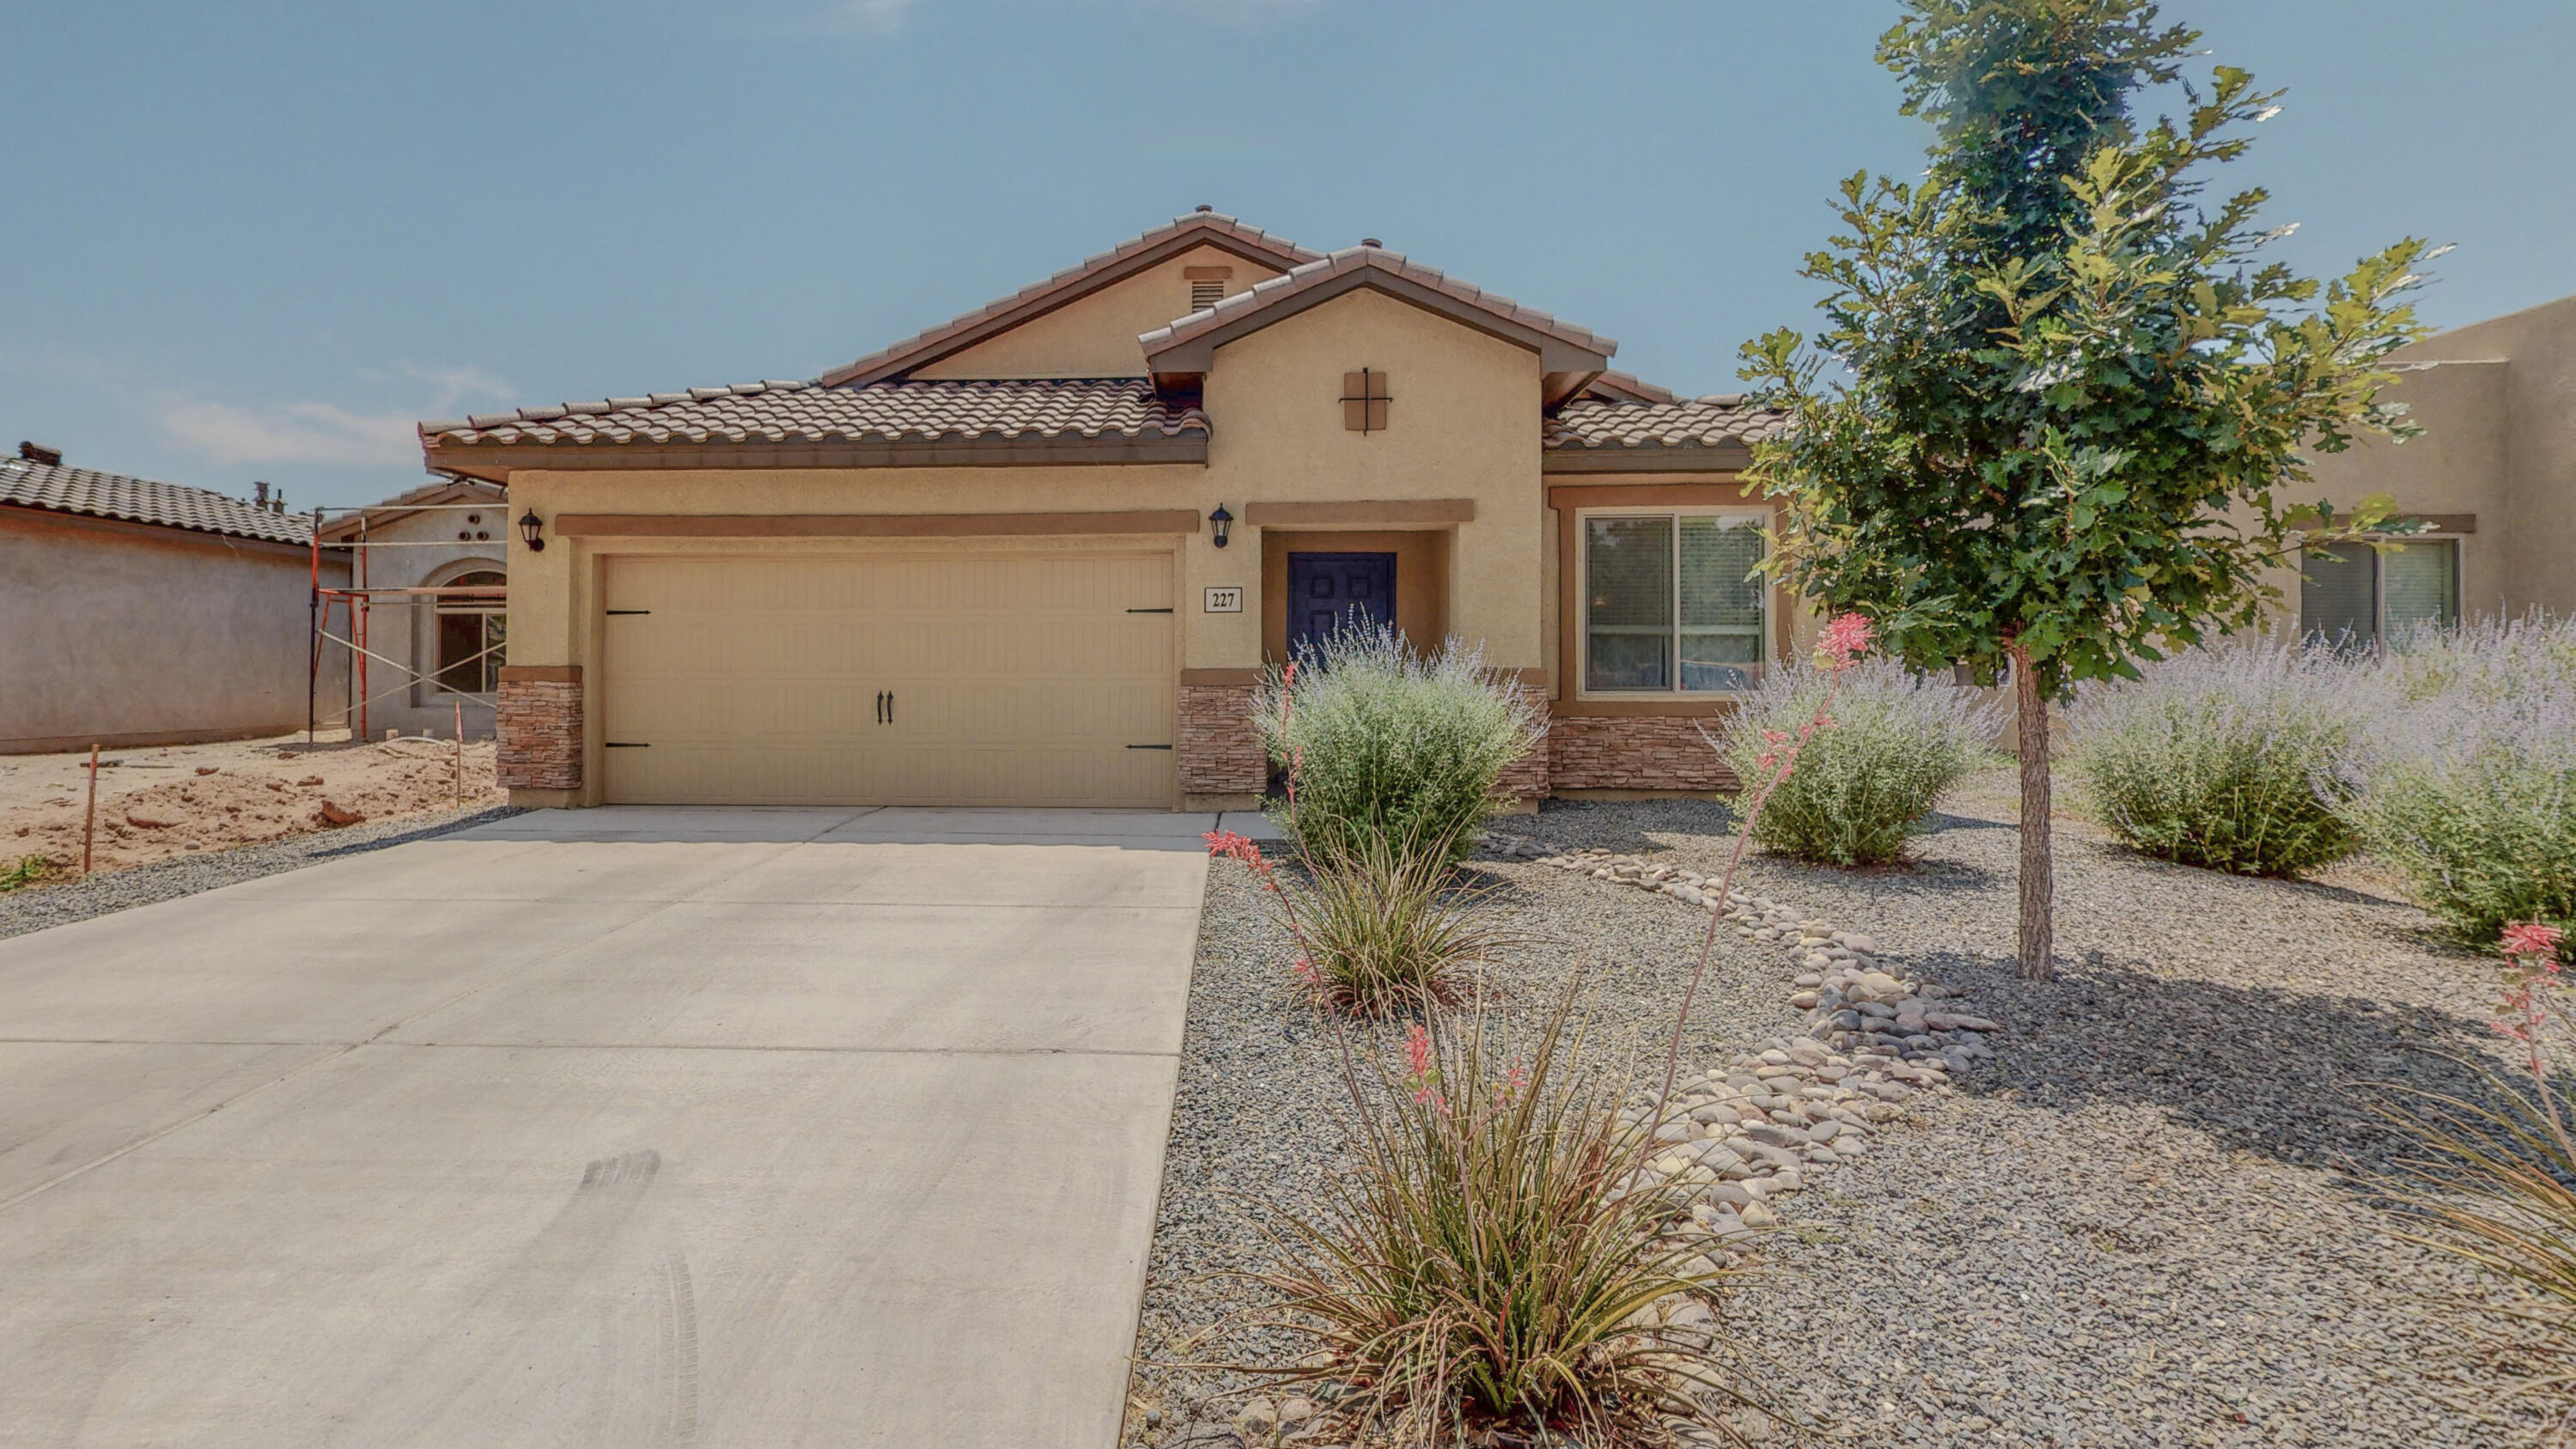 This beautiful LGI home sits on a quiet, gated cul-de-sac that is right next to the bosque! With gorgeous greenery & trails so close, it is easy to forget that it is so conveniently located to the heart of Albquerque! It was purchased new just 3 years ago, so it is in great shape with a very current decor. The kitchen boasts beautiful granite countertops & dark wood cabinetry, stainless steel appliances, tile floors, & it is open to the living room! There is a raised bar that transitions the spacious living room to the kitchen. The sellers added a Champion Sunroom to the patio! The backyard has been partially landscaped & grass was in the plans next before plans changed.  The master suite includes a walk-in shower, garden tub & double sinks, plus a walk-in closet! This home is a must see!!